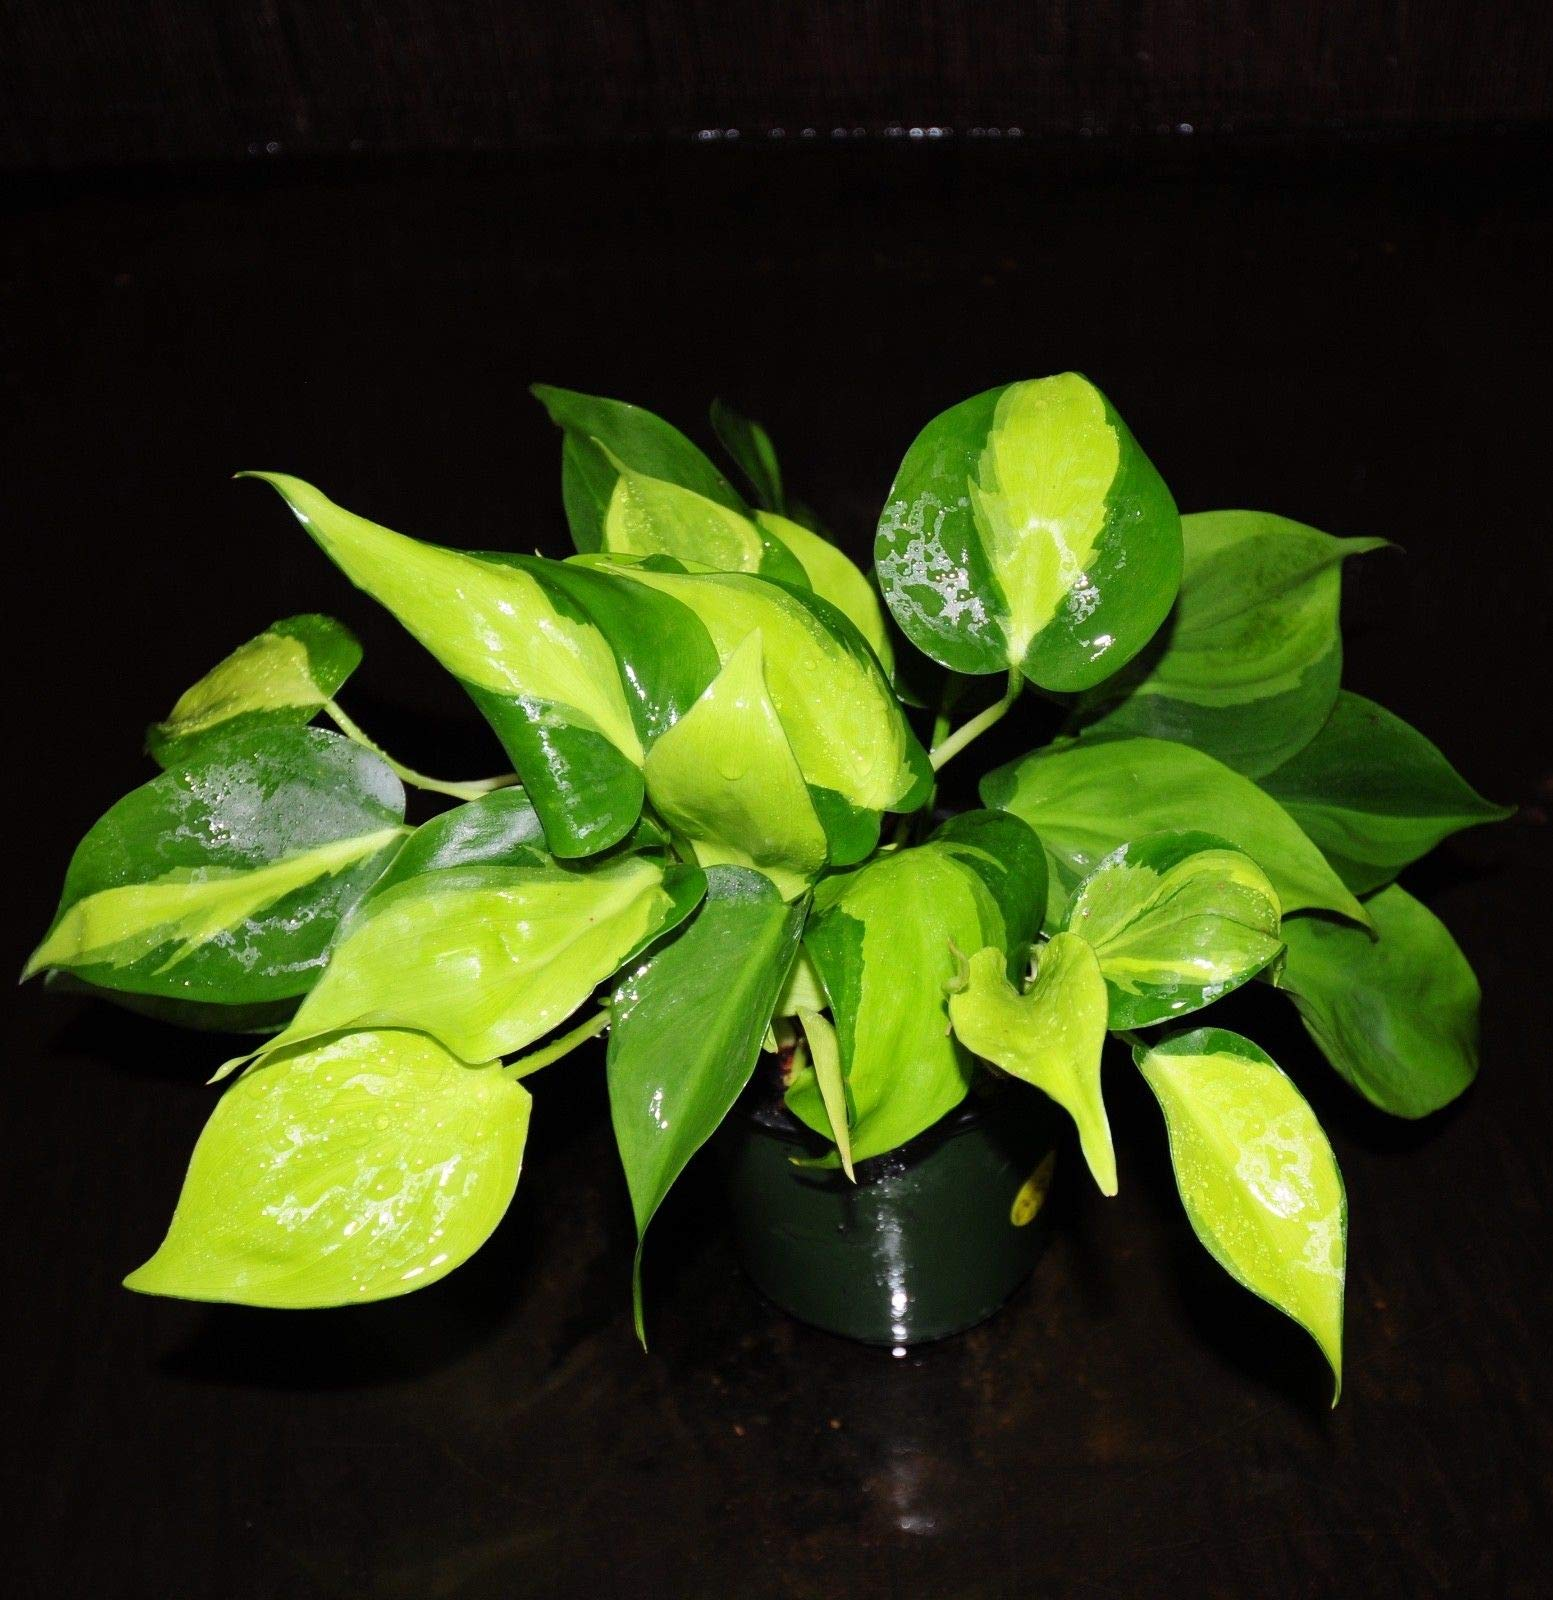 Gorgeous Philodendron Brasil Easy Tropical Houseplant Full Large 4'' Pot (Premium Quality) by AY-Premium